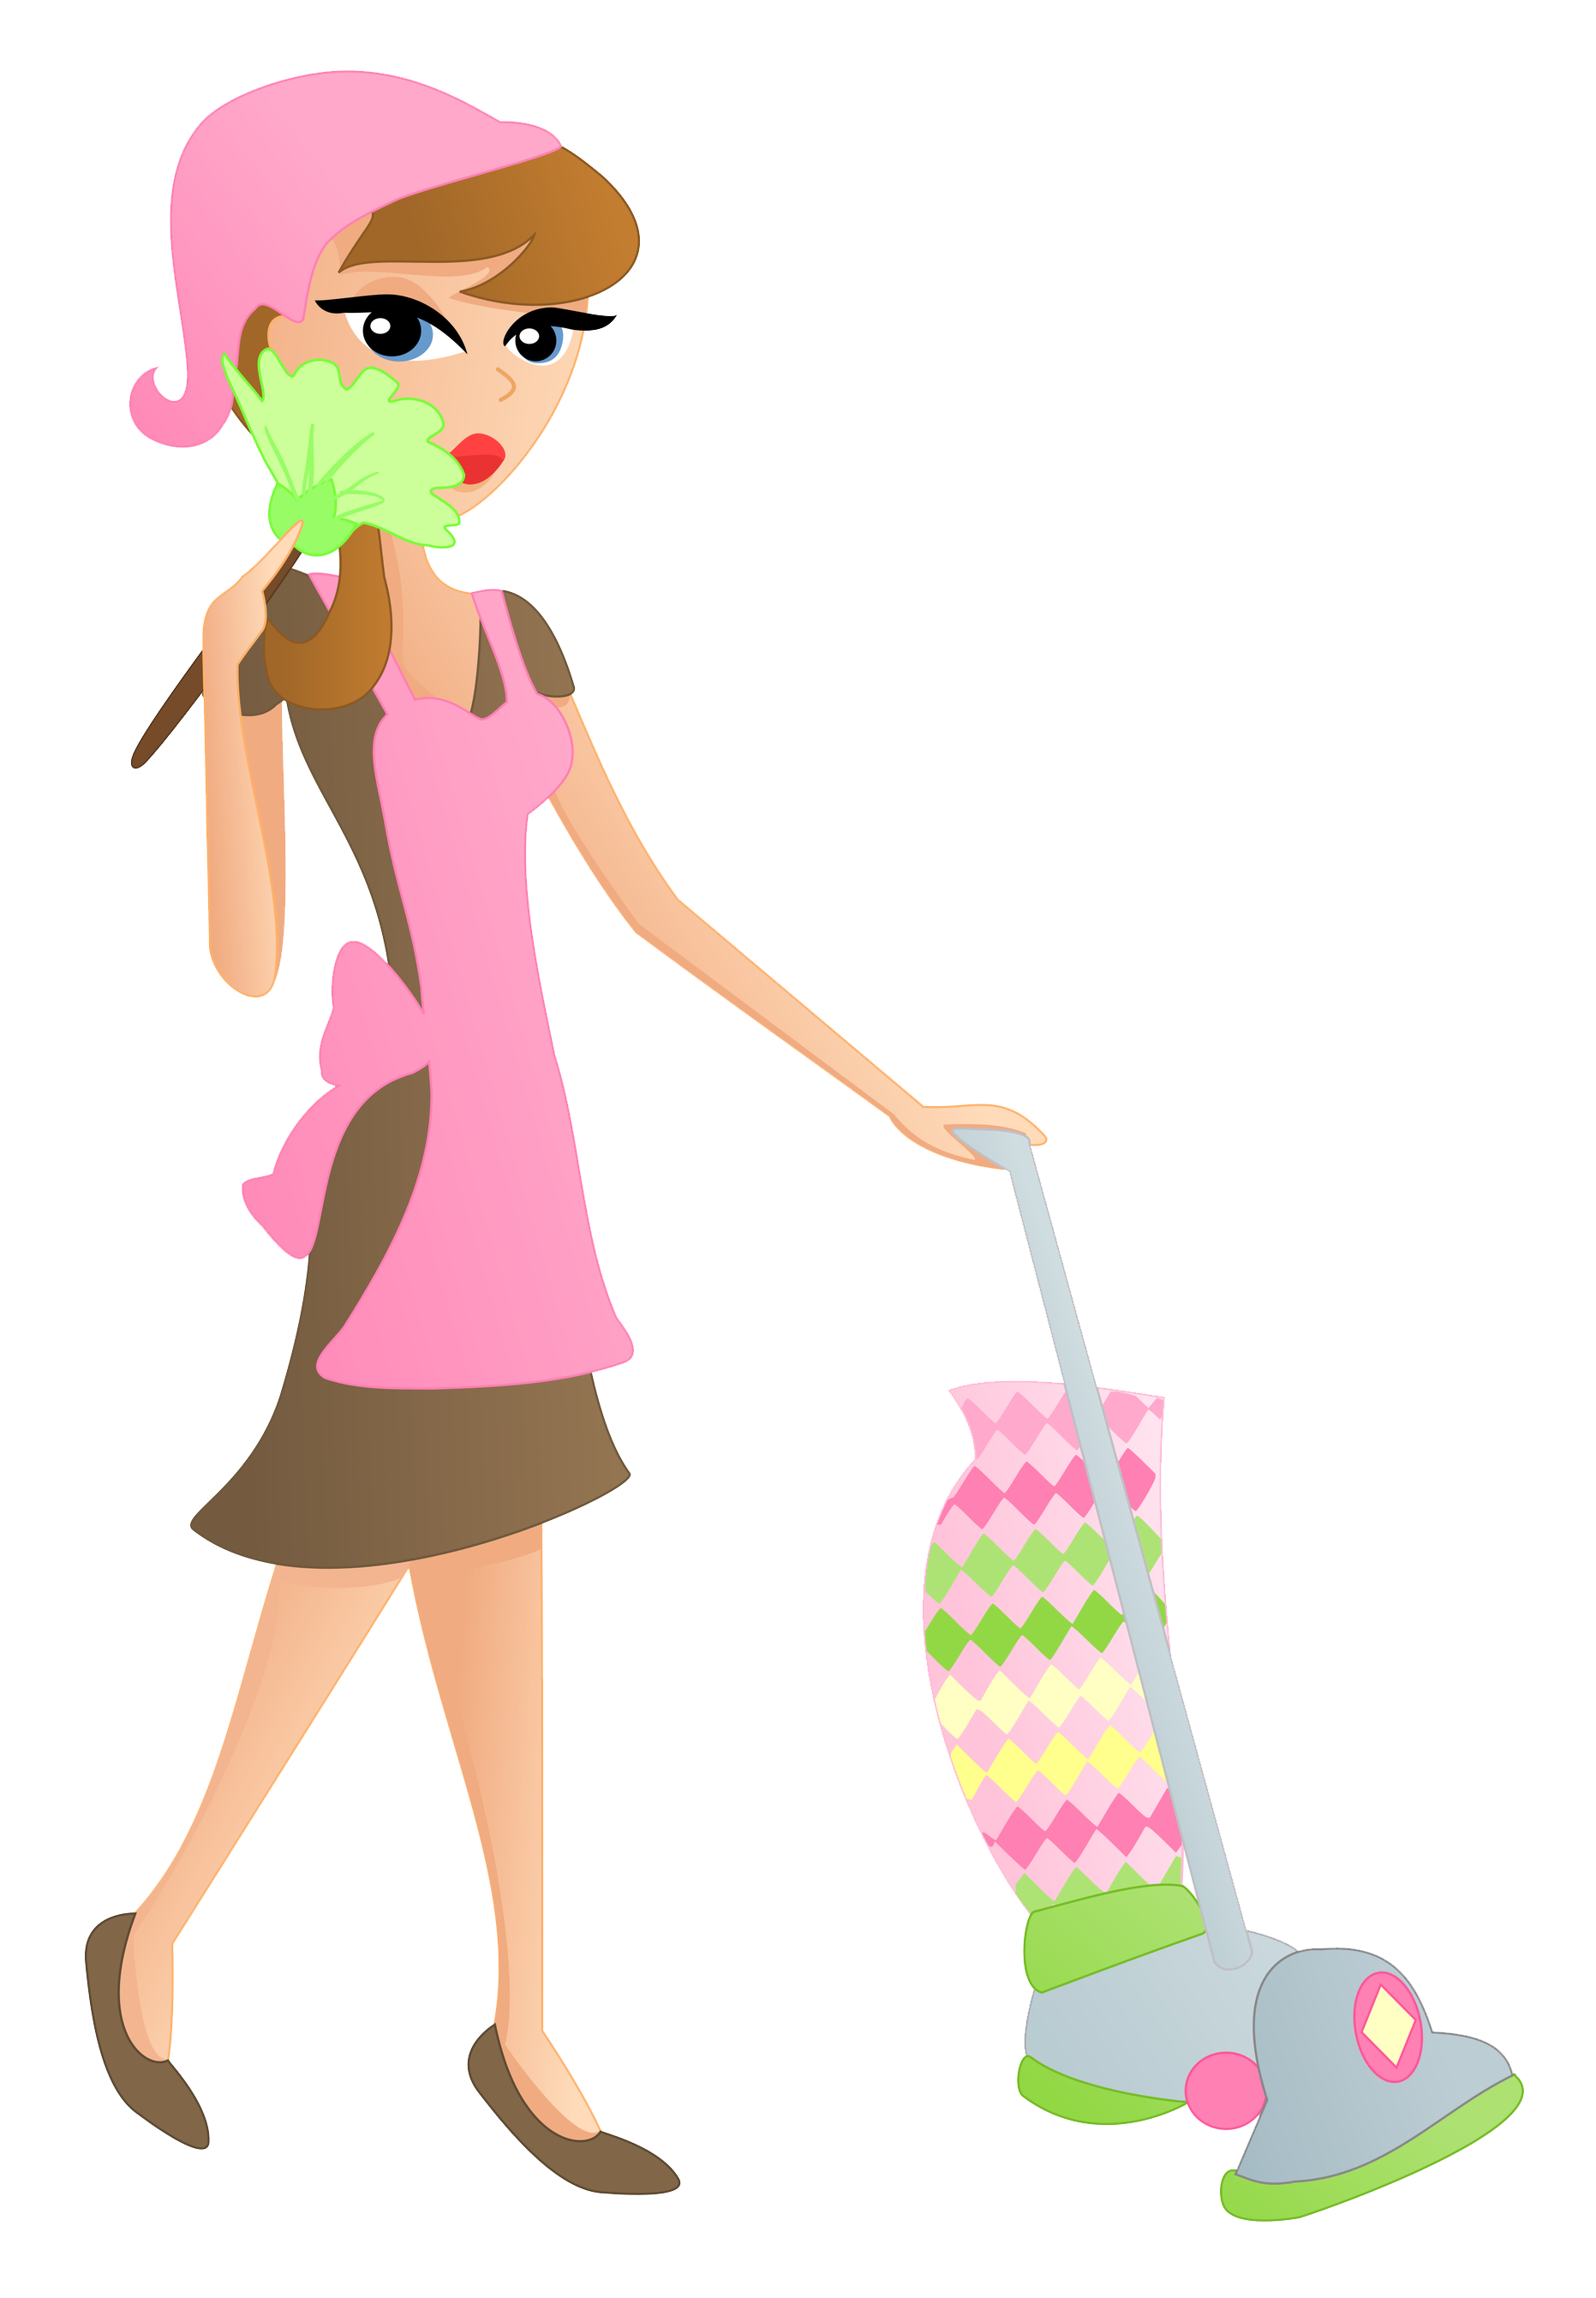 Cleaner service transprent png. Maid clipart cleaning lady